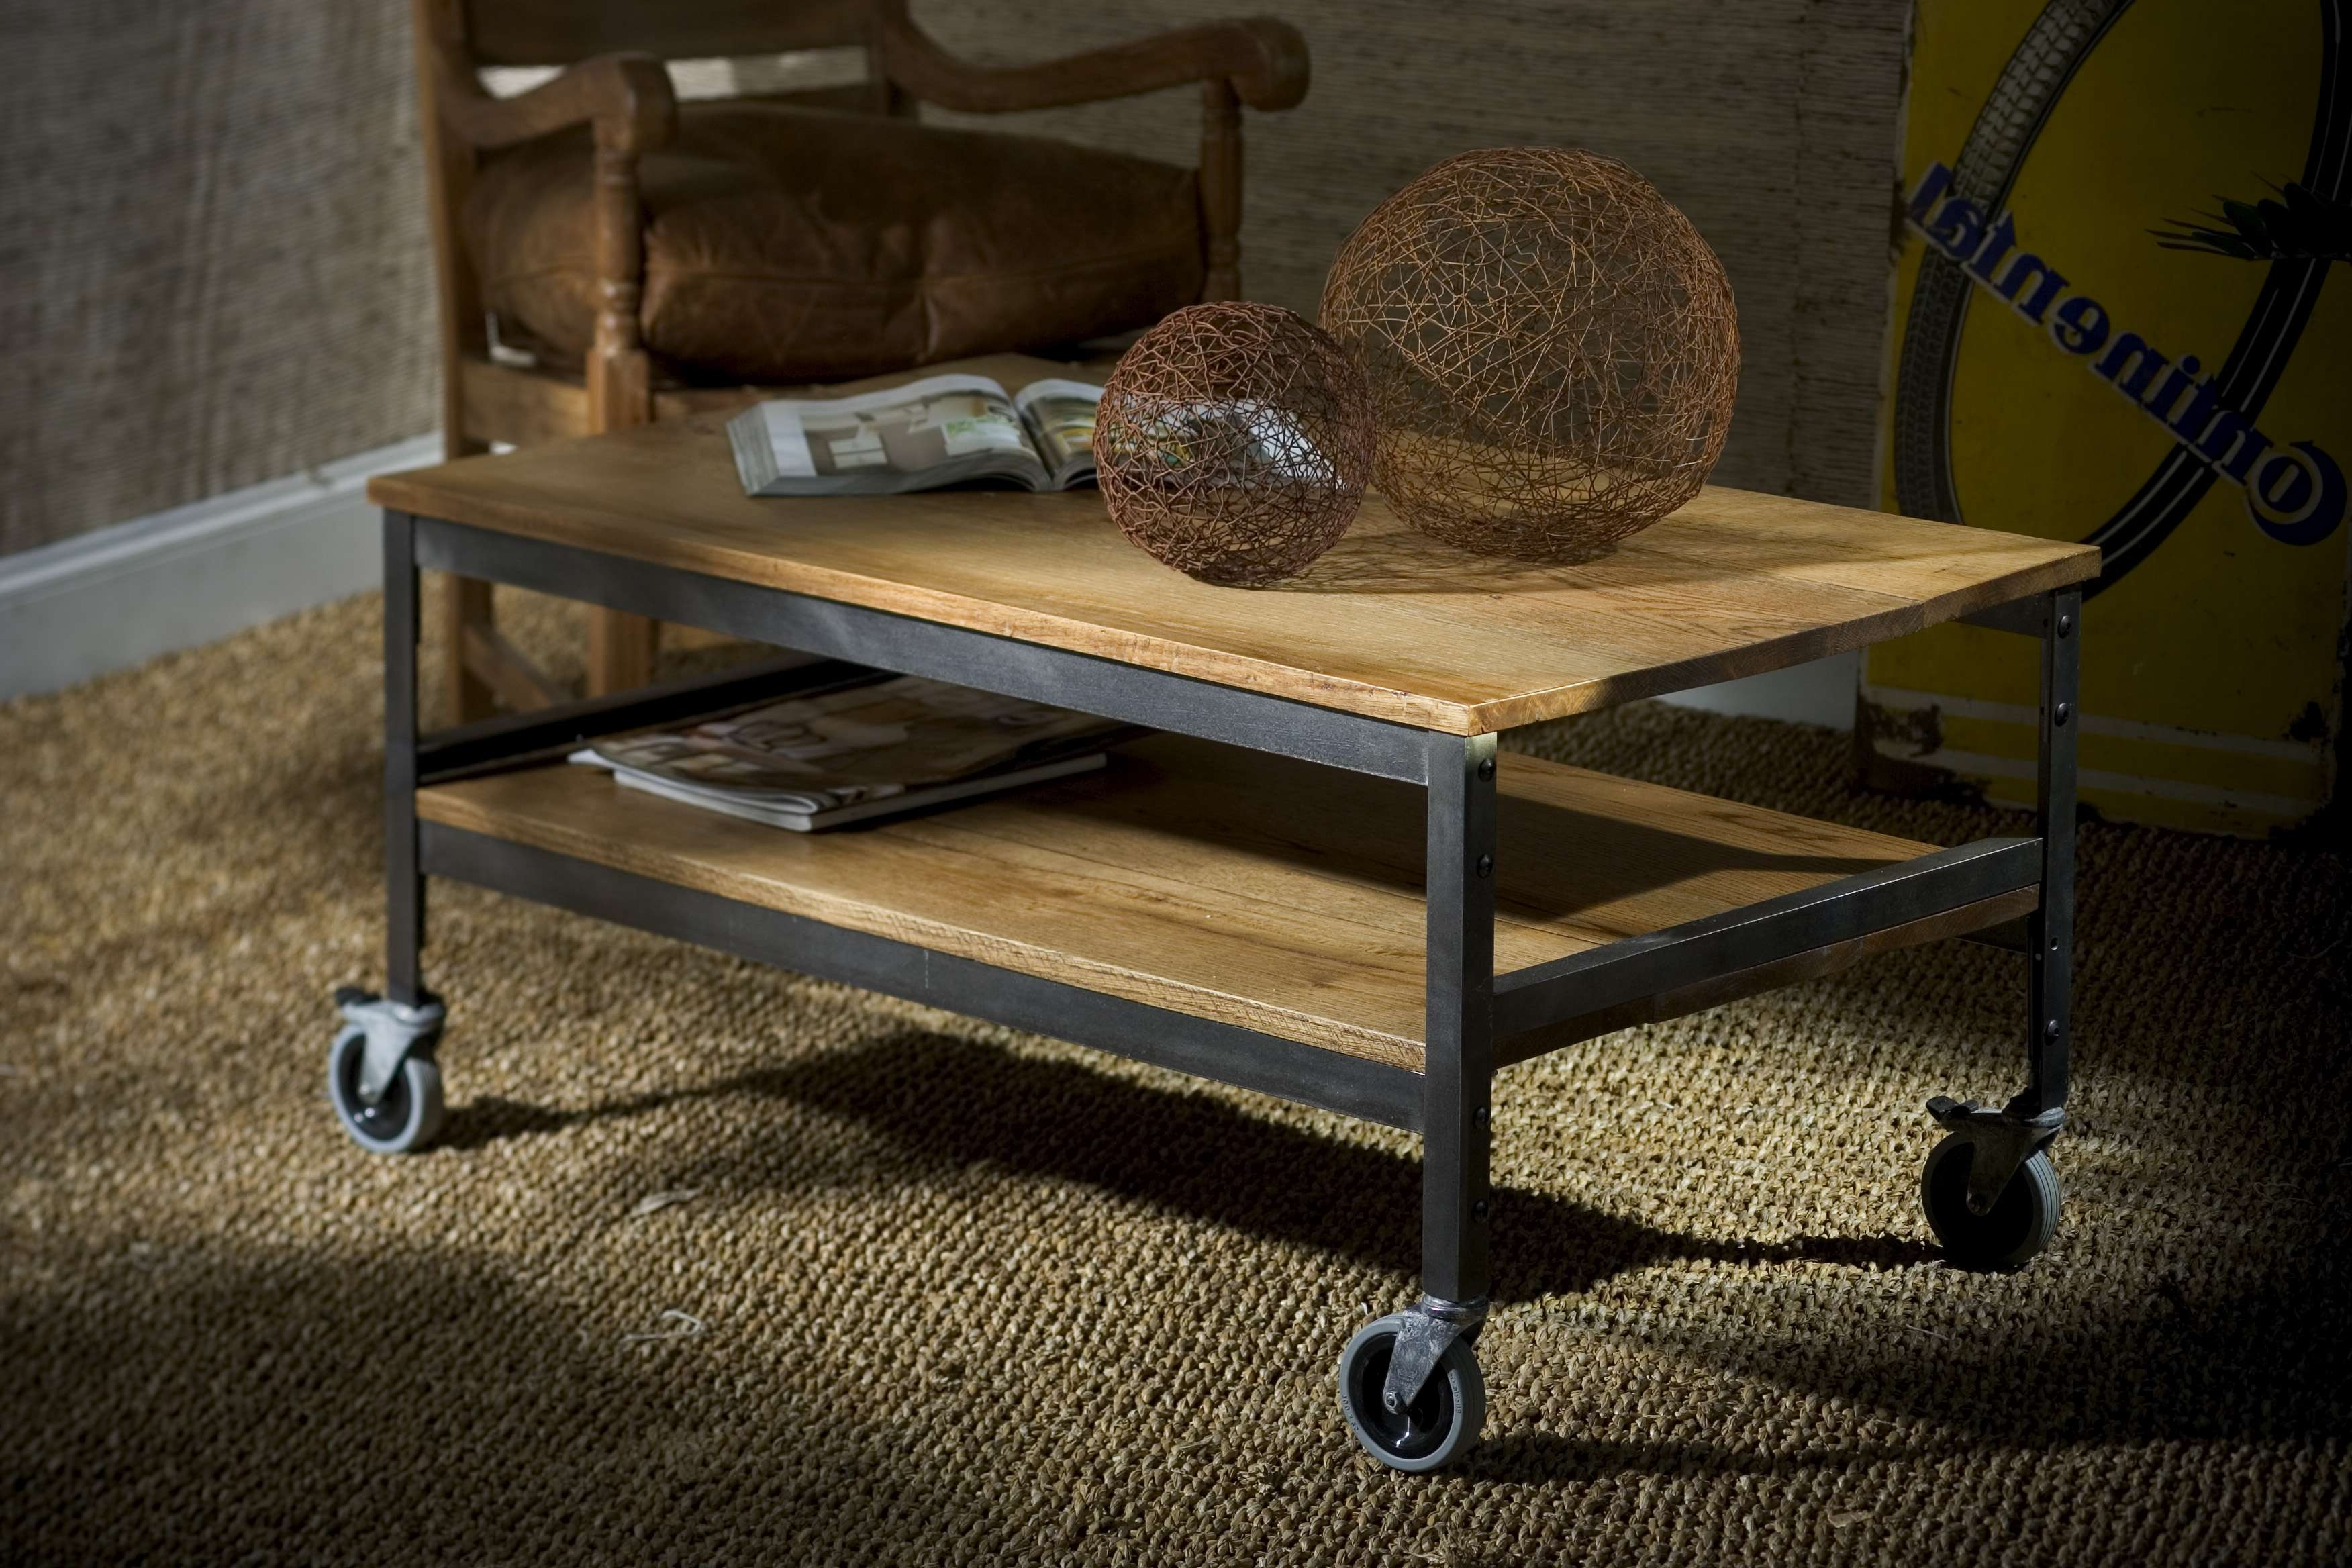 20 Best Ideas of Rustic Coffee Table With Wheels